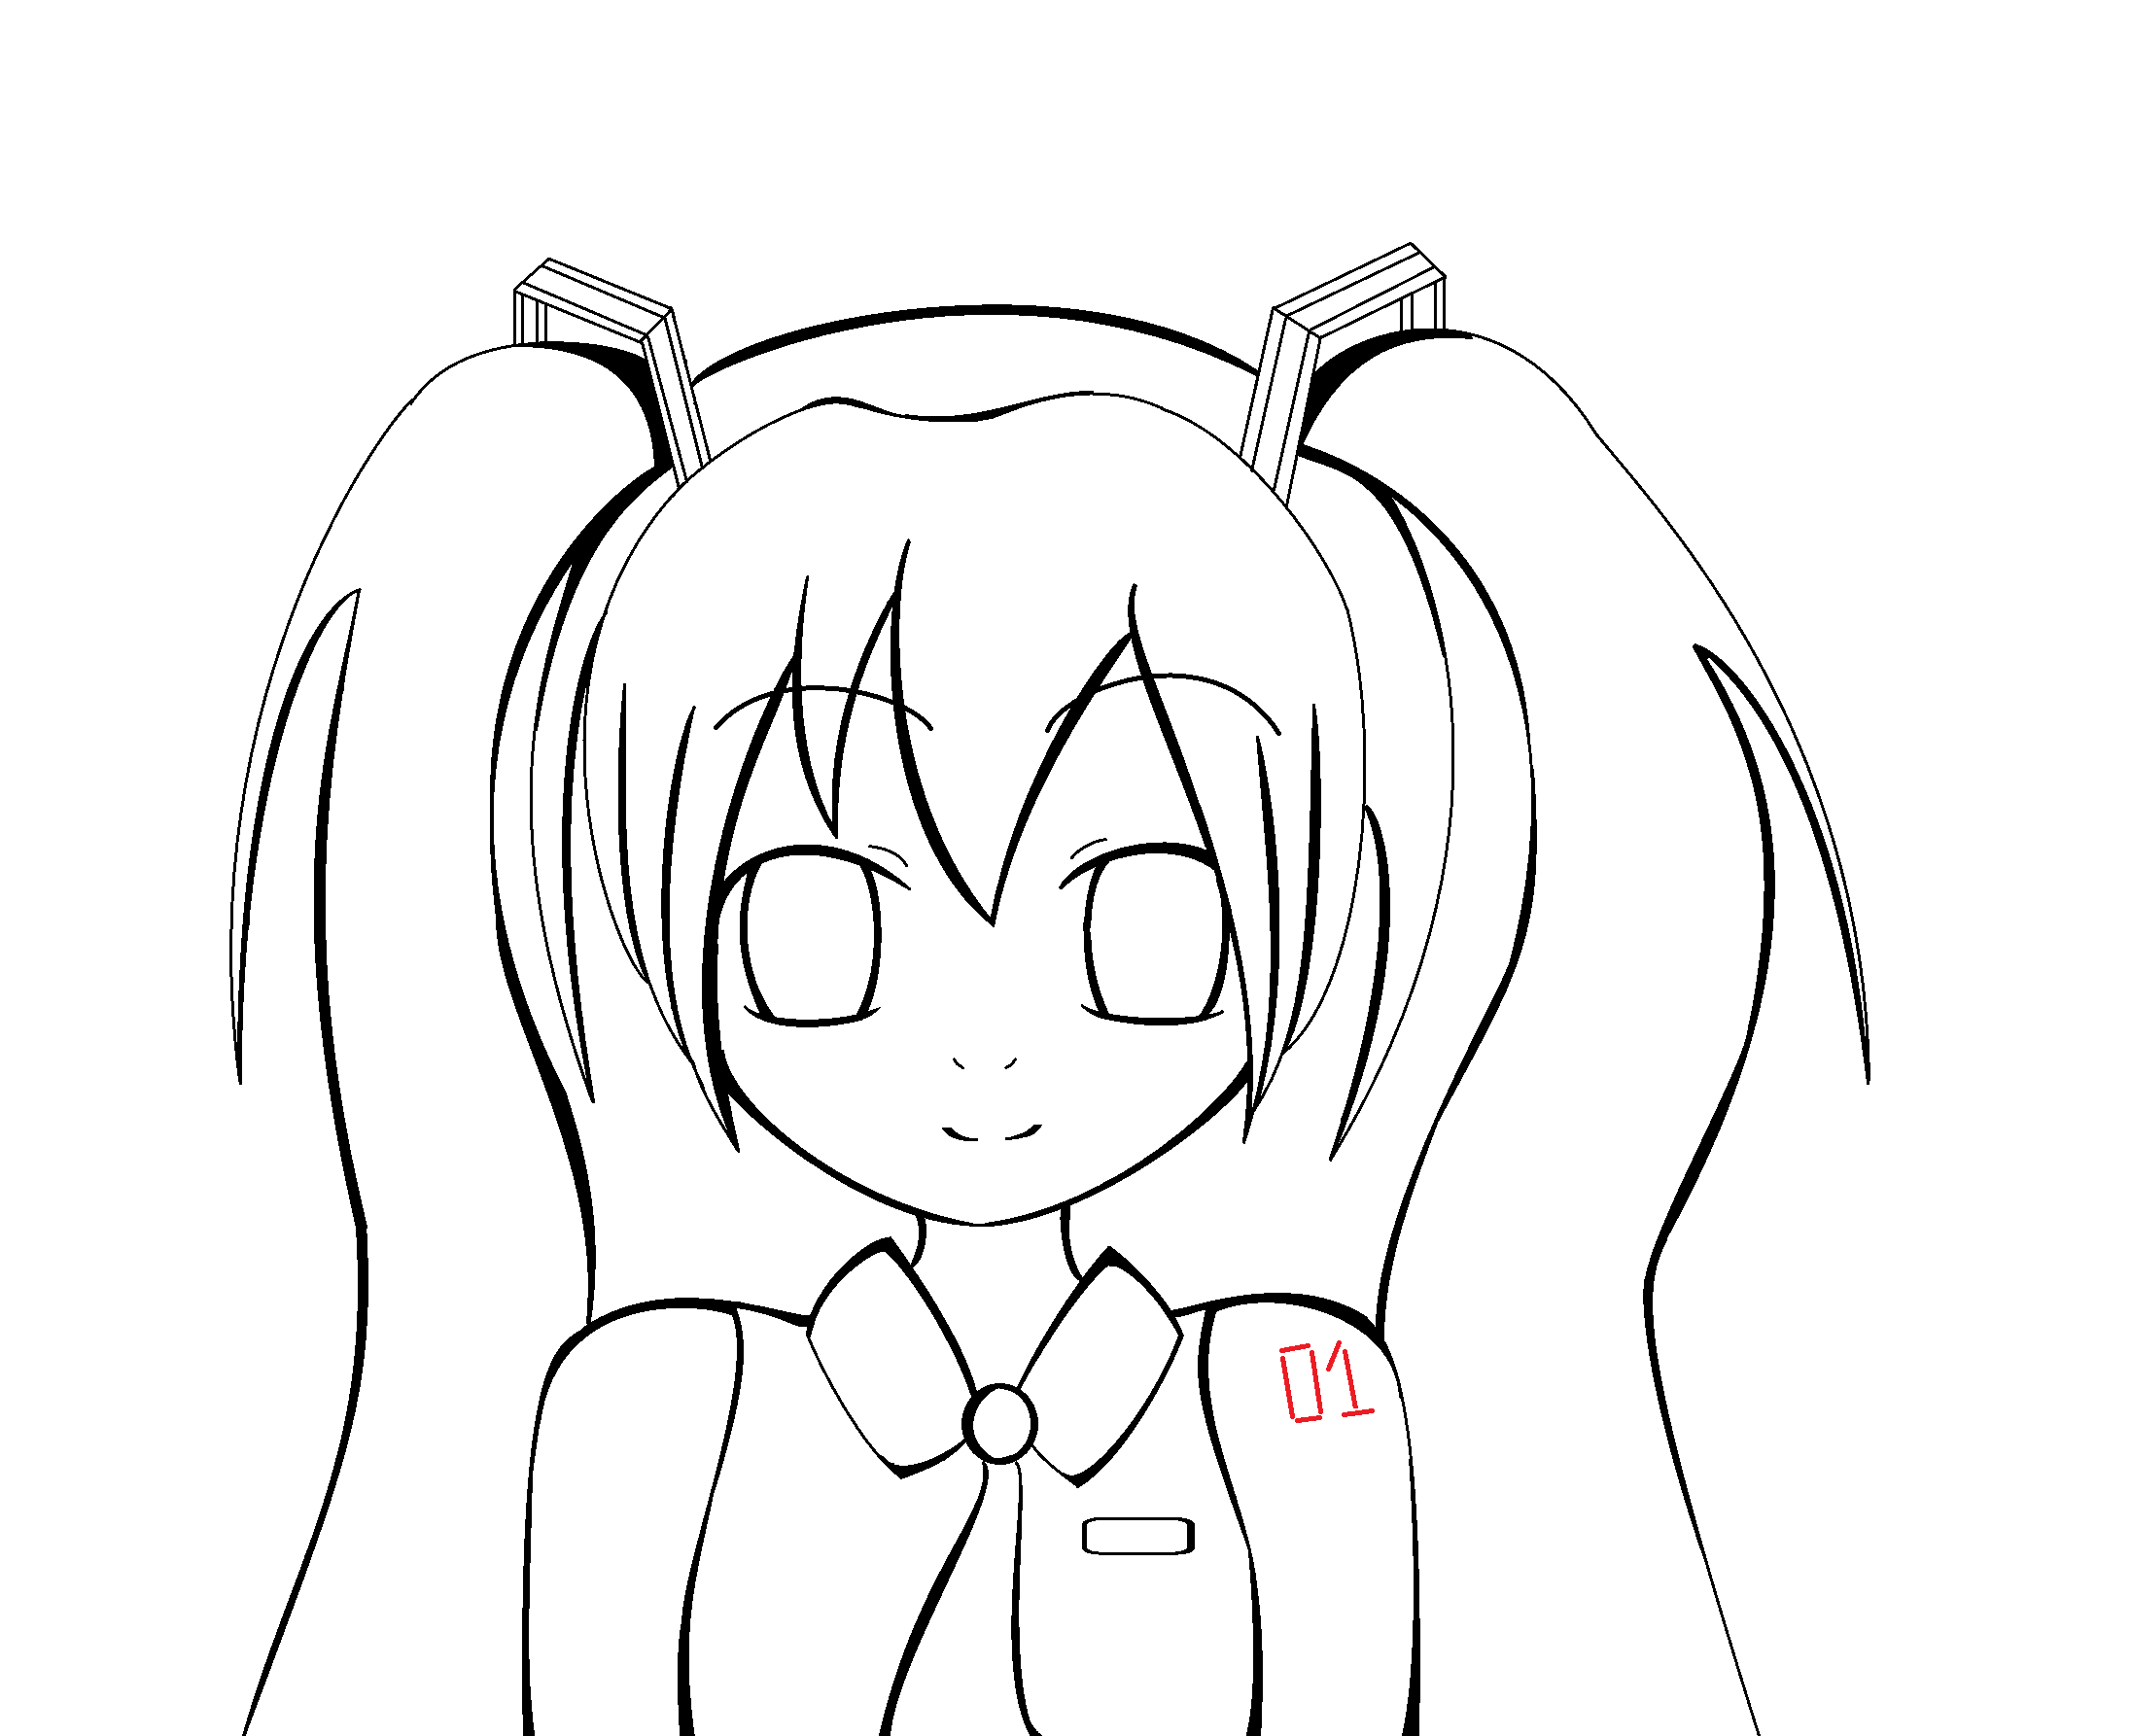 hatsune miku coloring pages - hatsune miku coloring base by thecreepyfan on deviantart